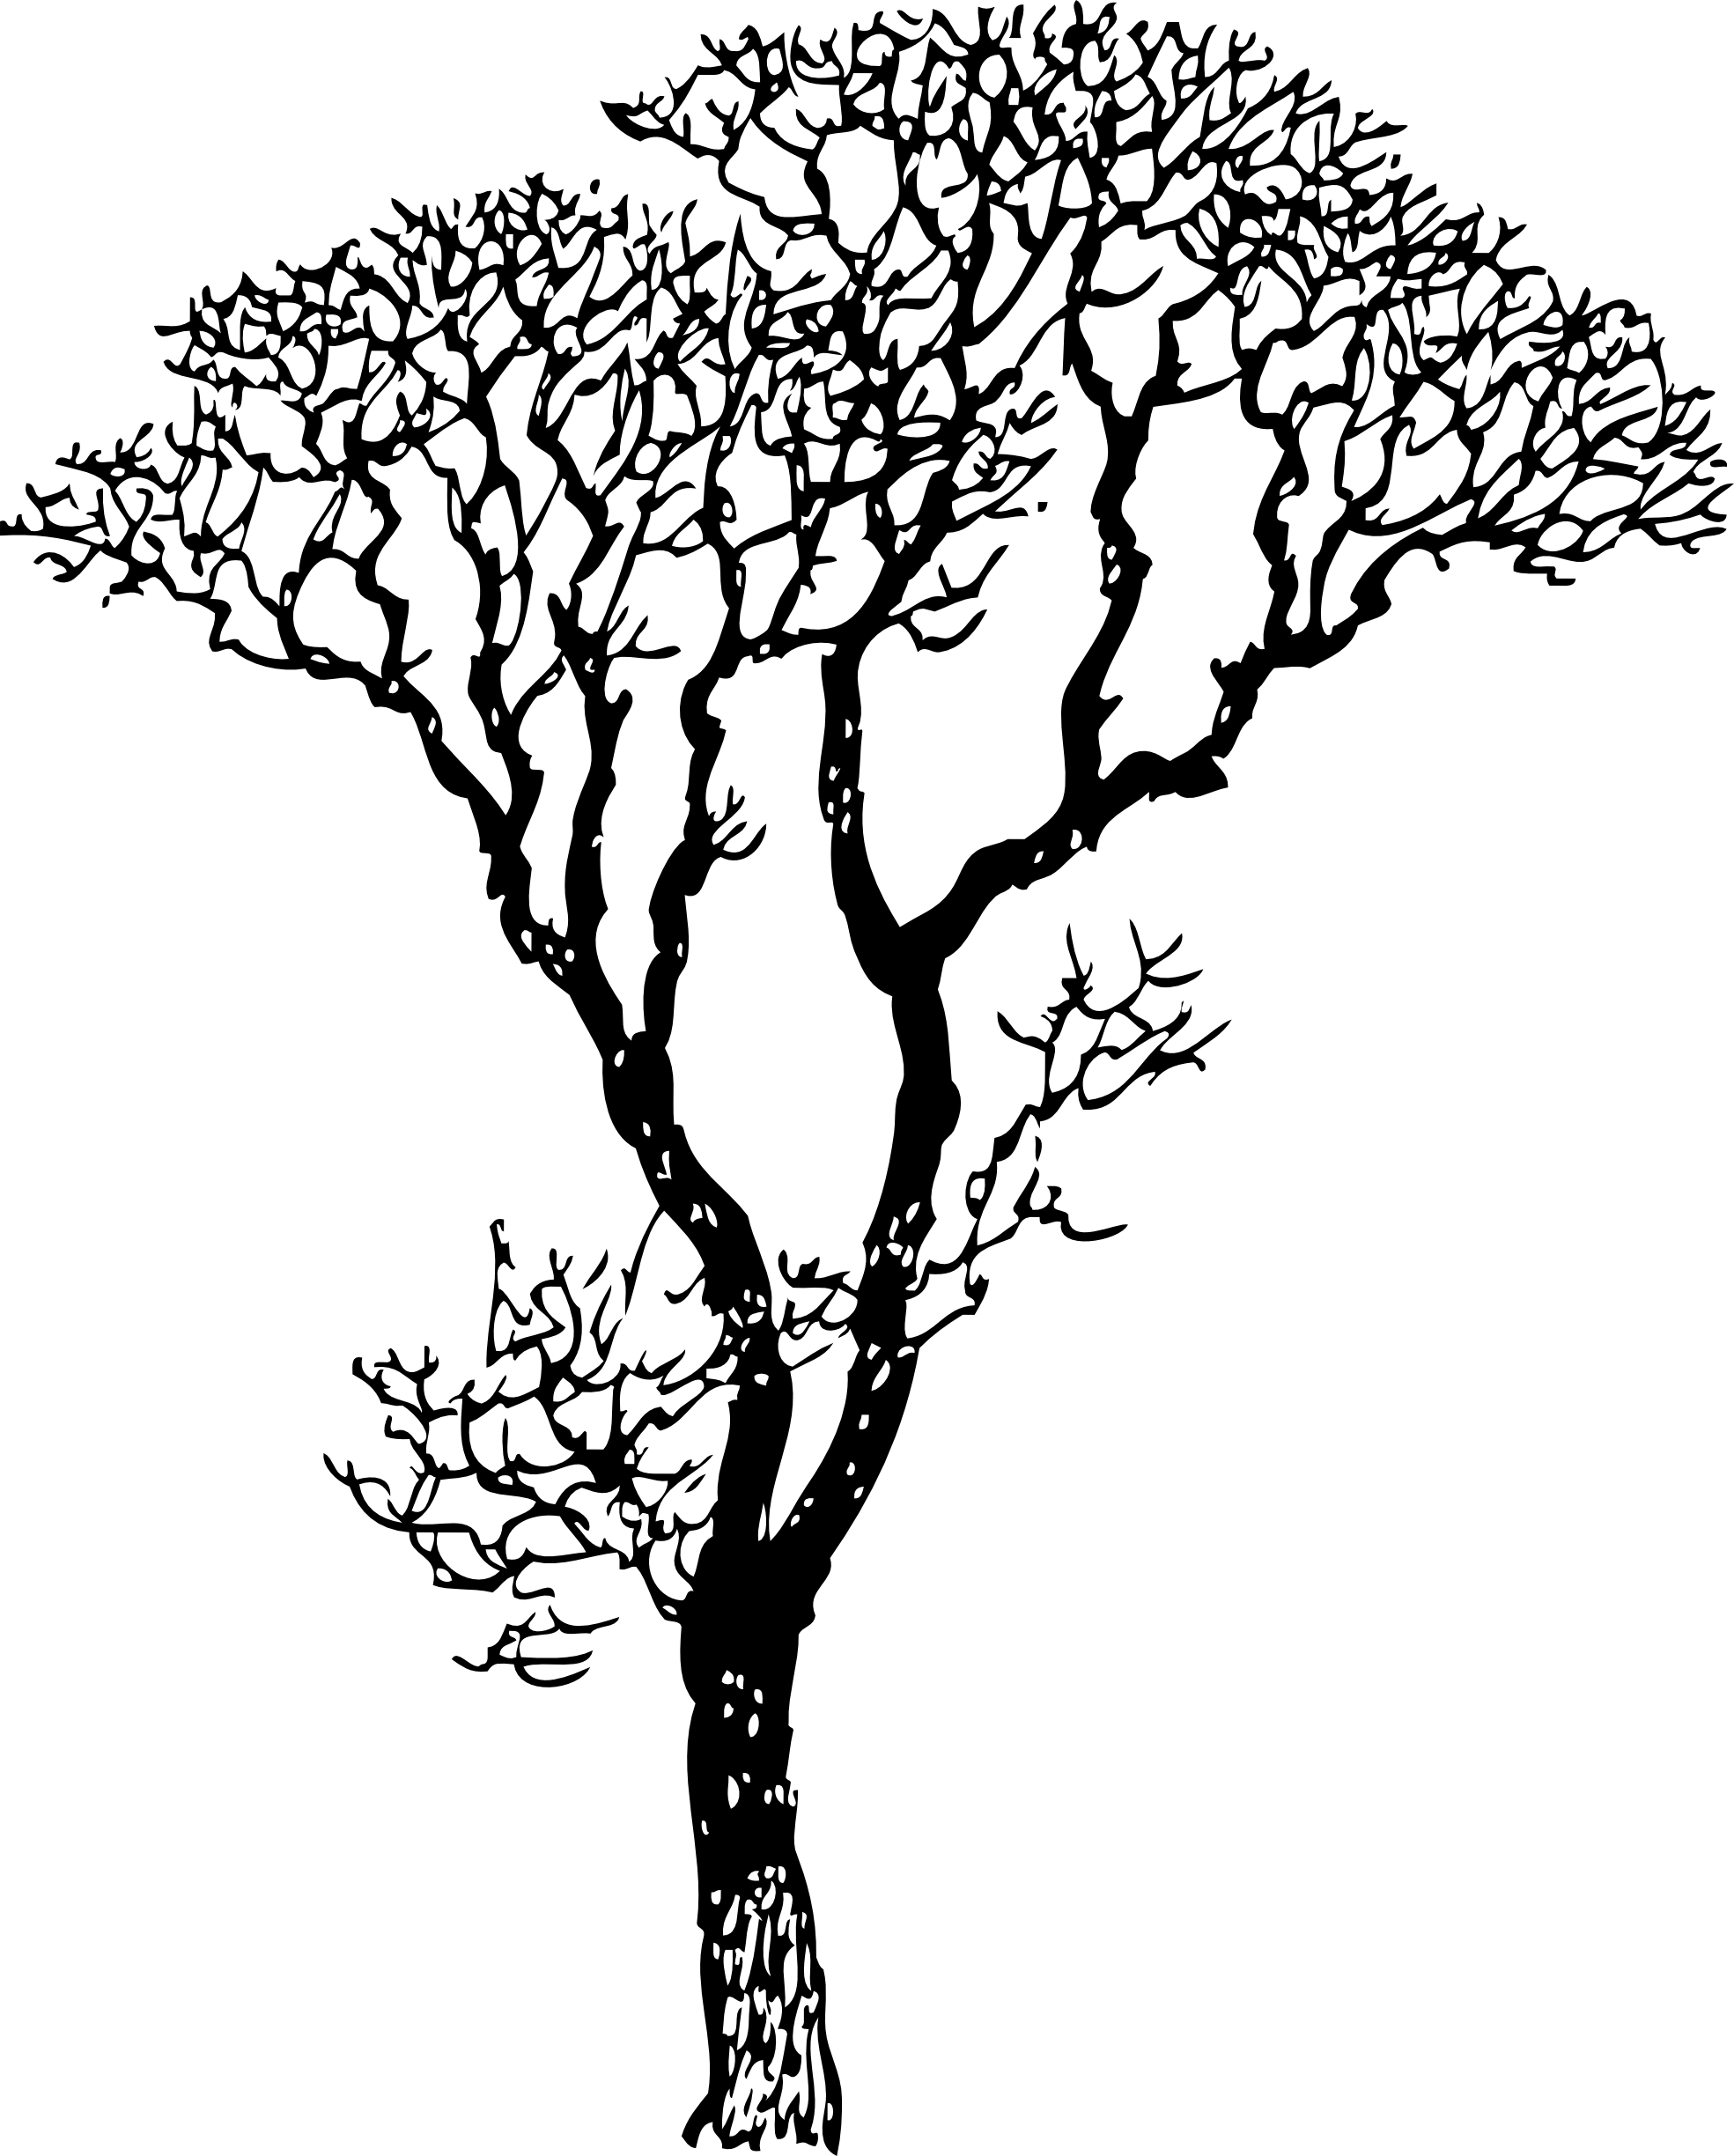 Bare tree black white line art coloring book colouring letters clipart best clipart best